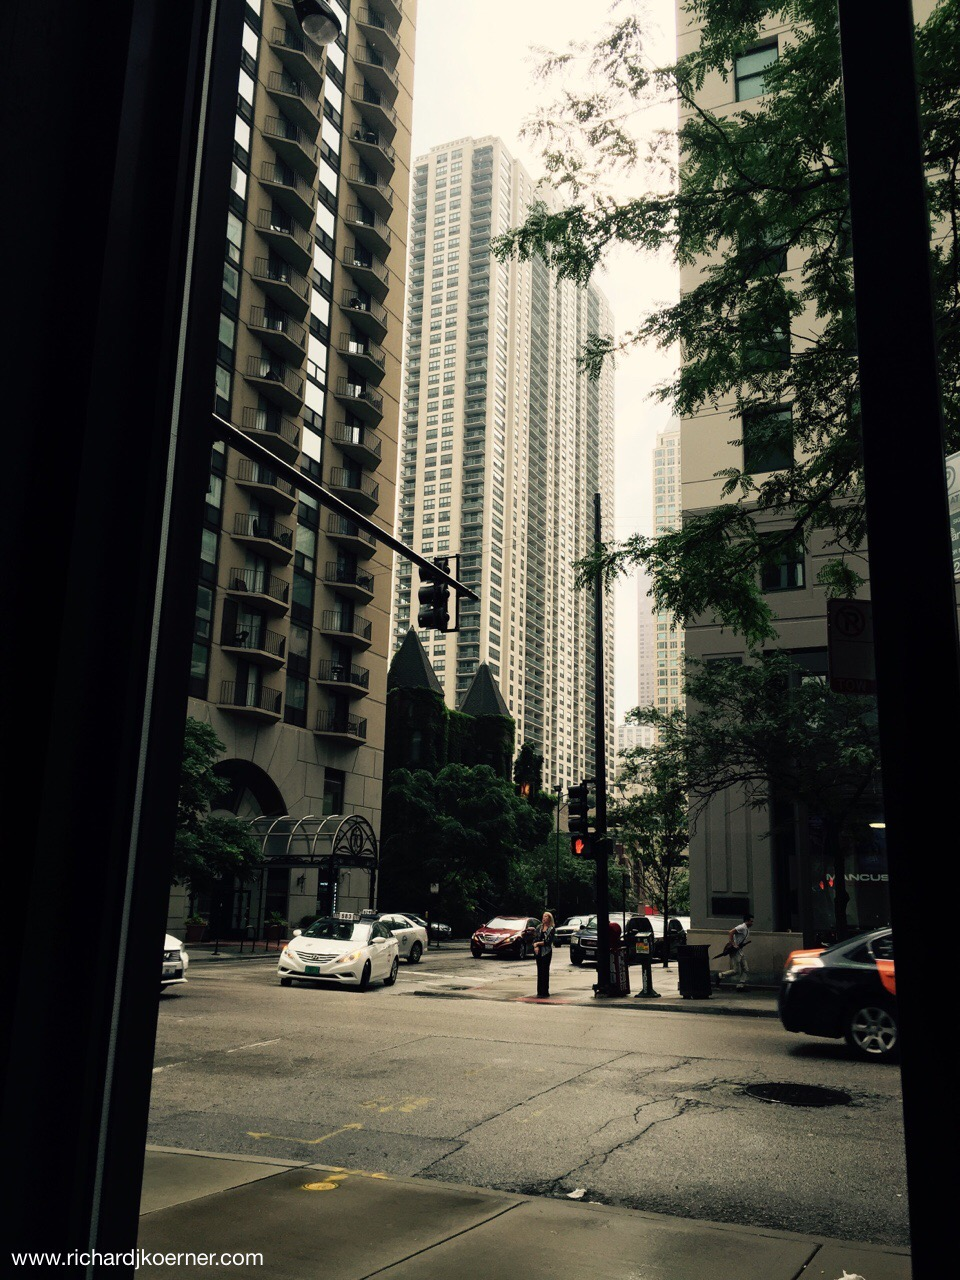 Chicago / IL / Etats-Unis - 6/29/15